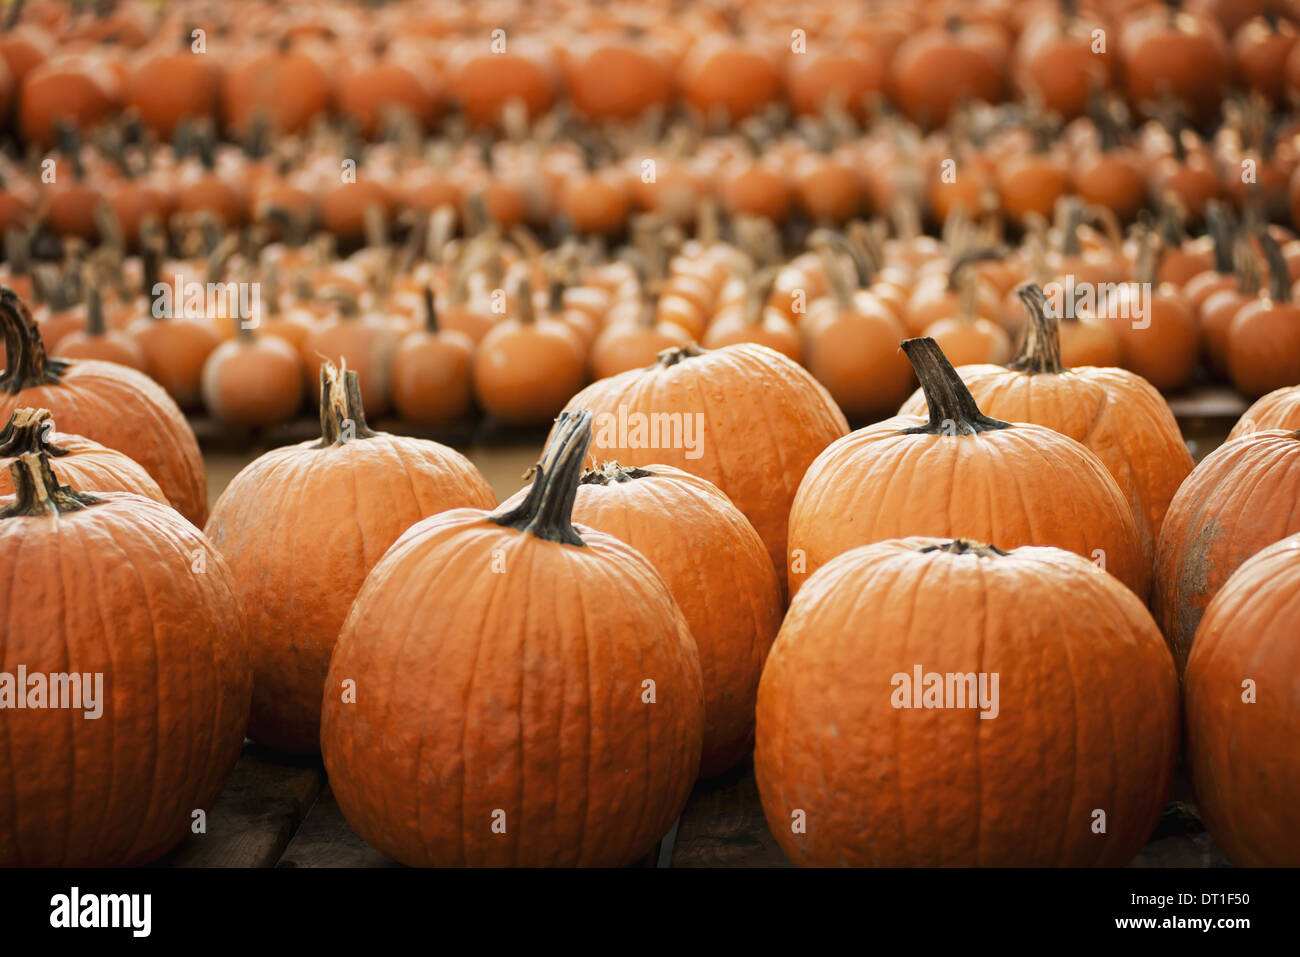 Pumpkins arranged in rows to be hardened off and dried Organic farm - Stock Image